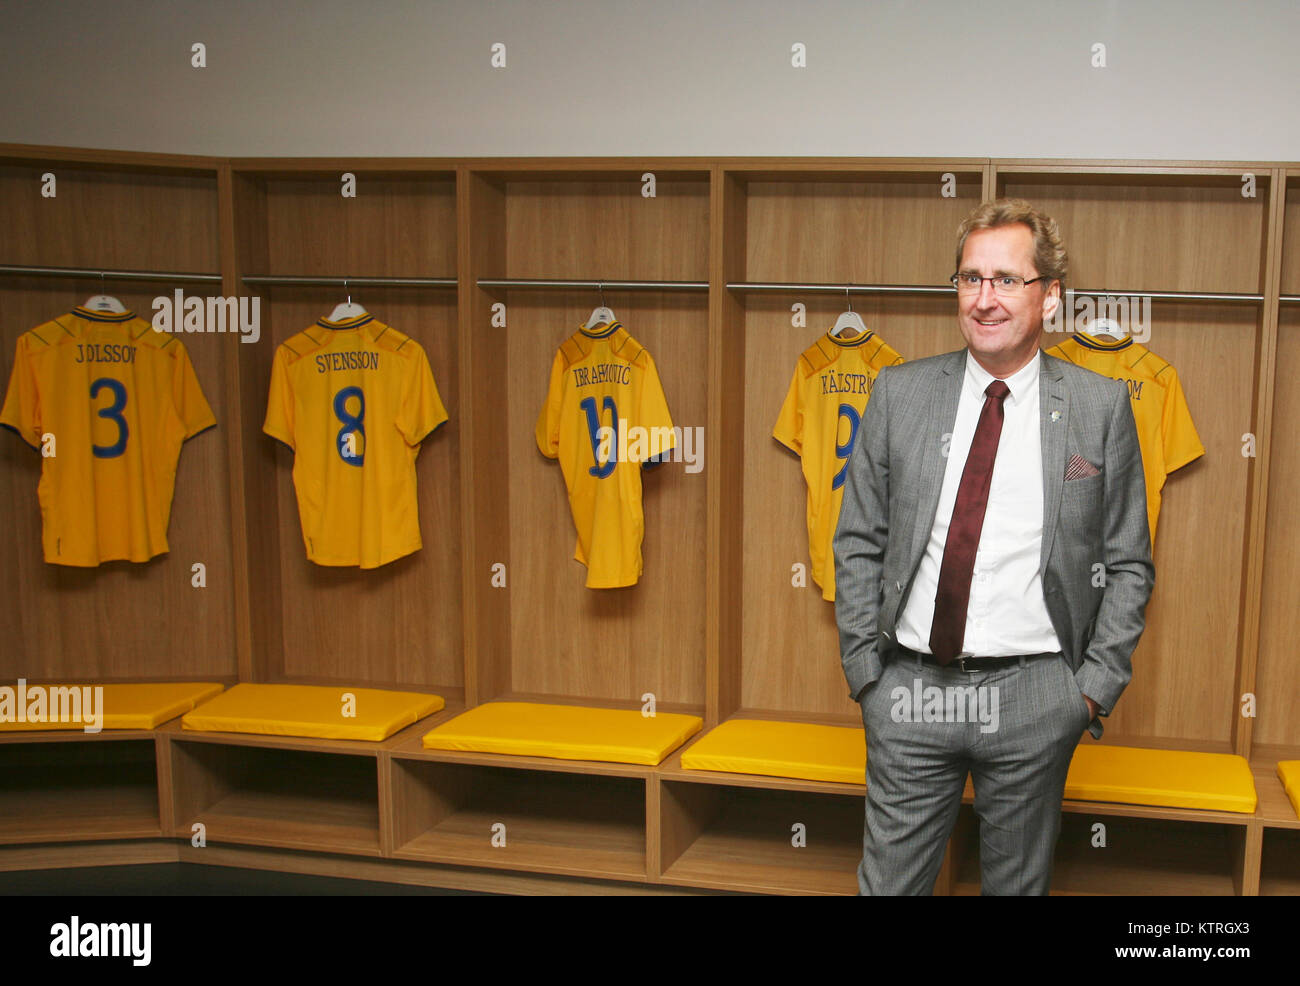 ERIK HAMRÉN Former Swedish football coach for National team 2012 in the locker room in Friends arena - Stock Image